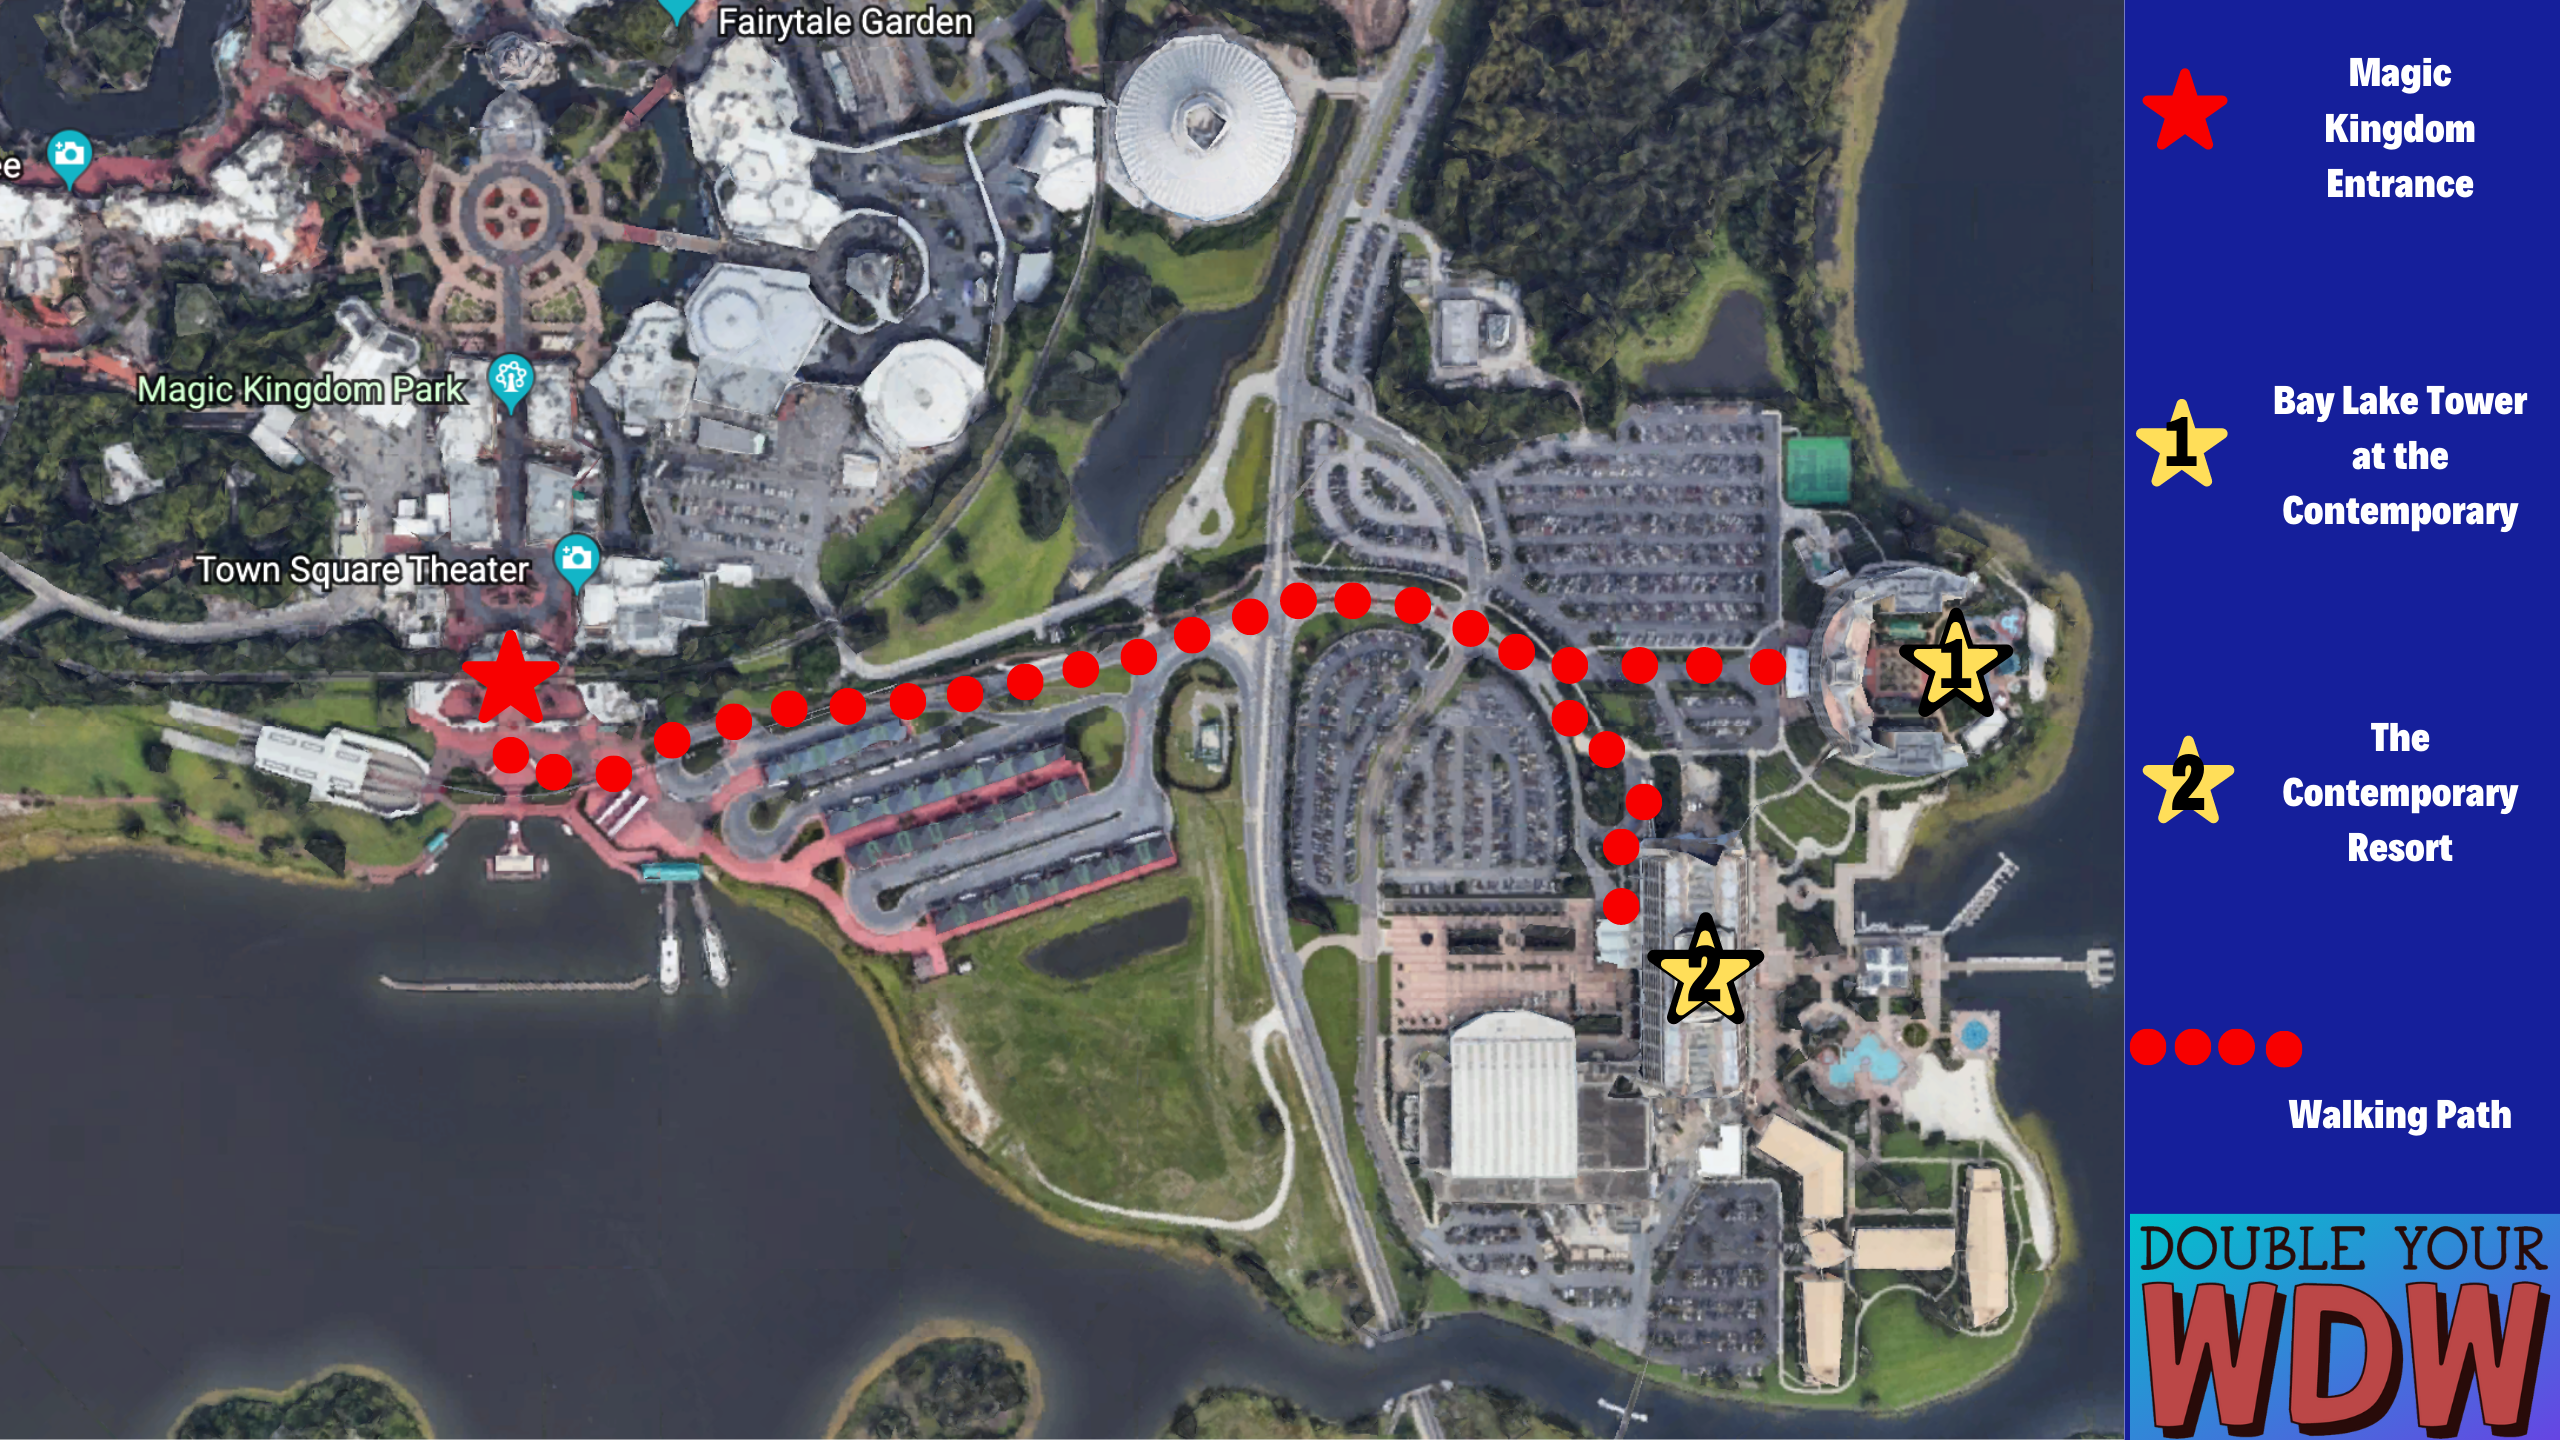 Contemporary to Magic Kingdom Walking Path